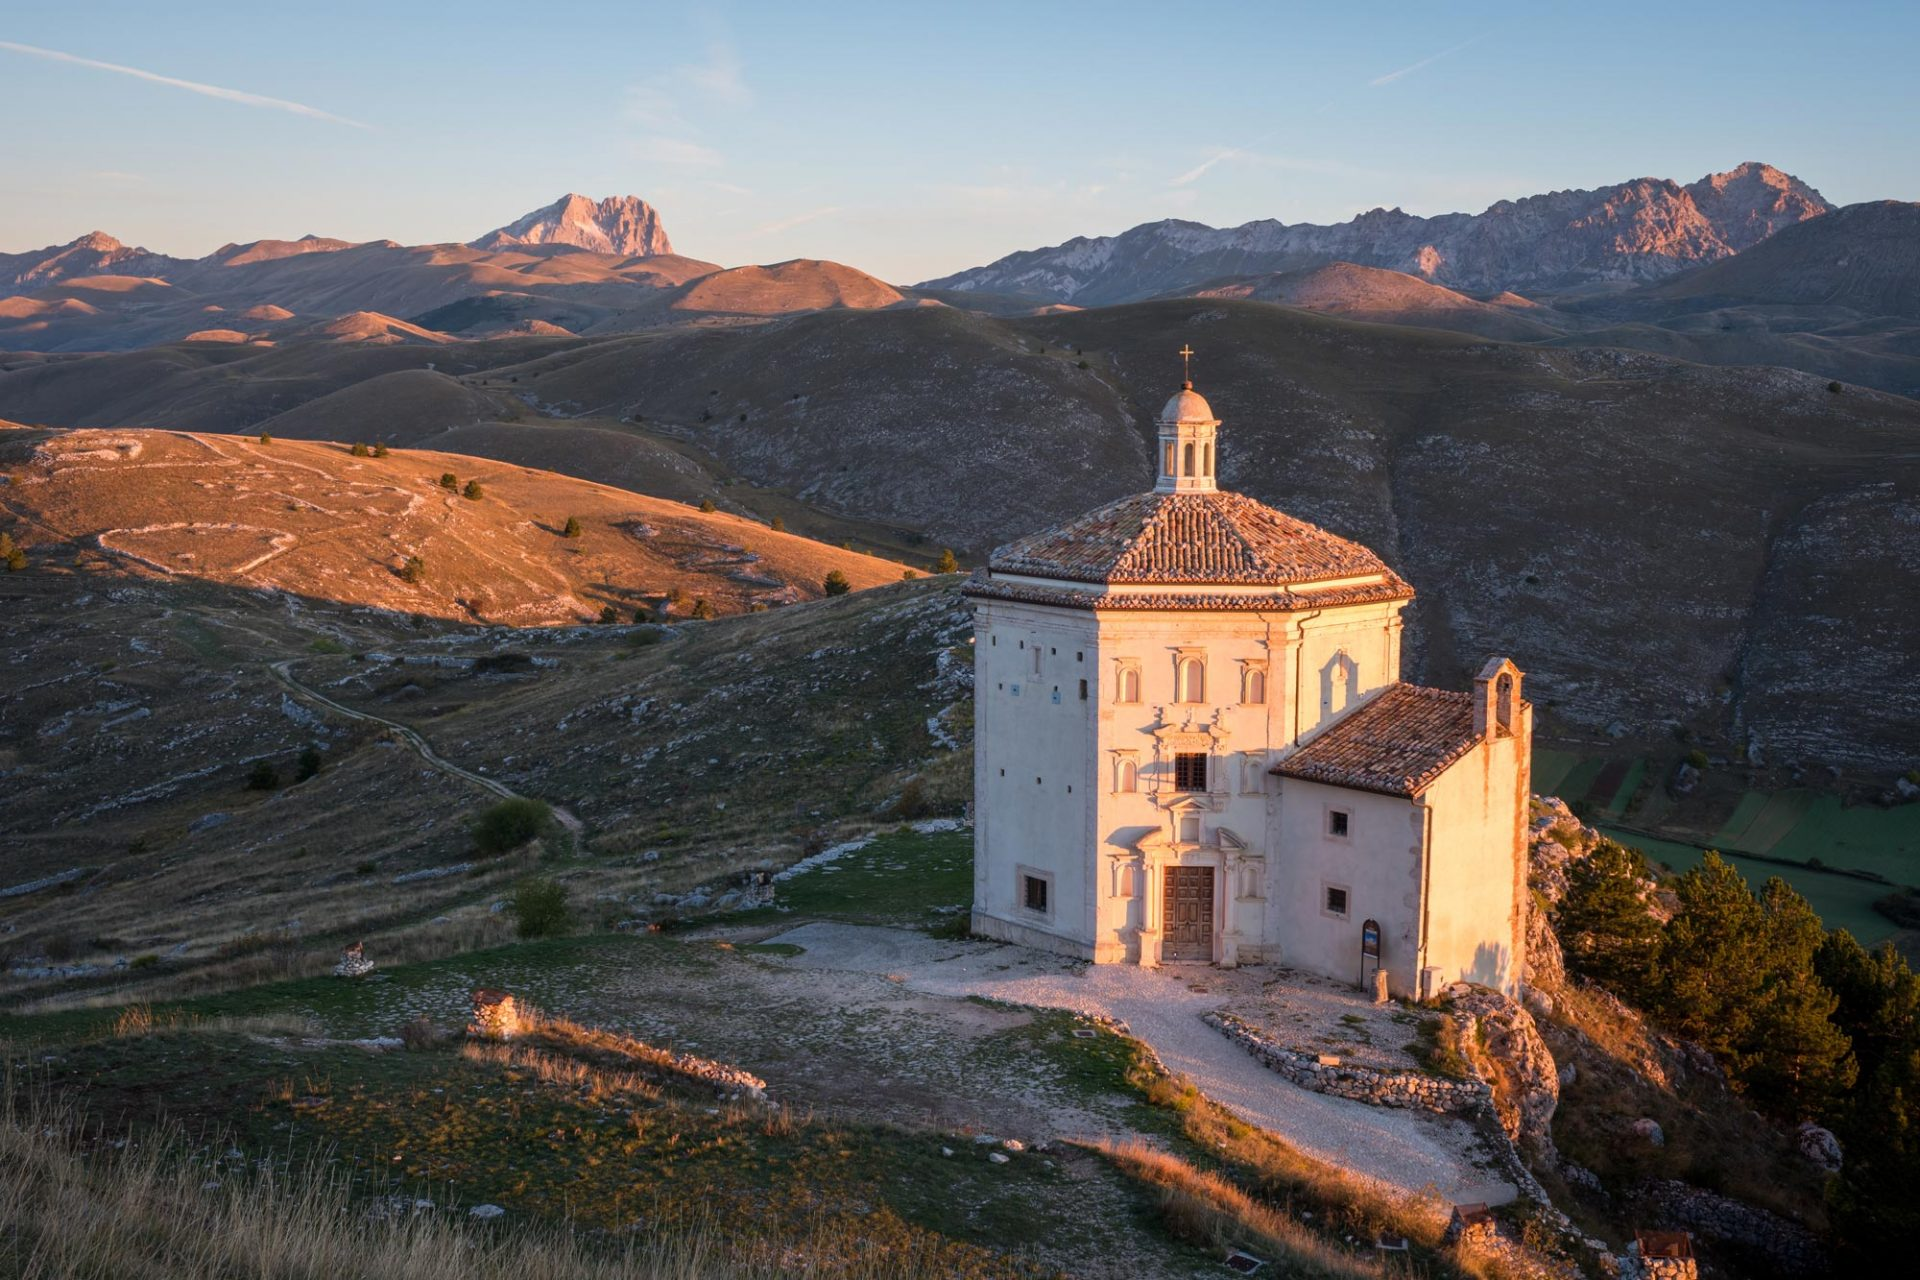 church built on a mountain in italy at sunset